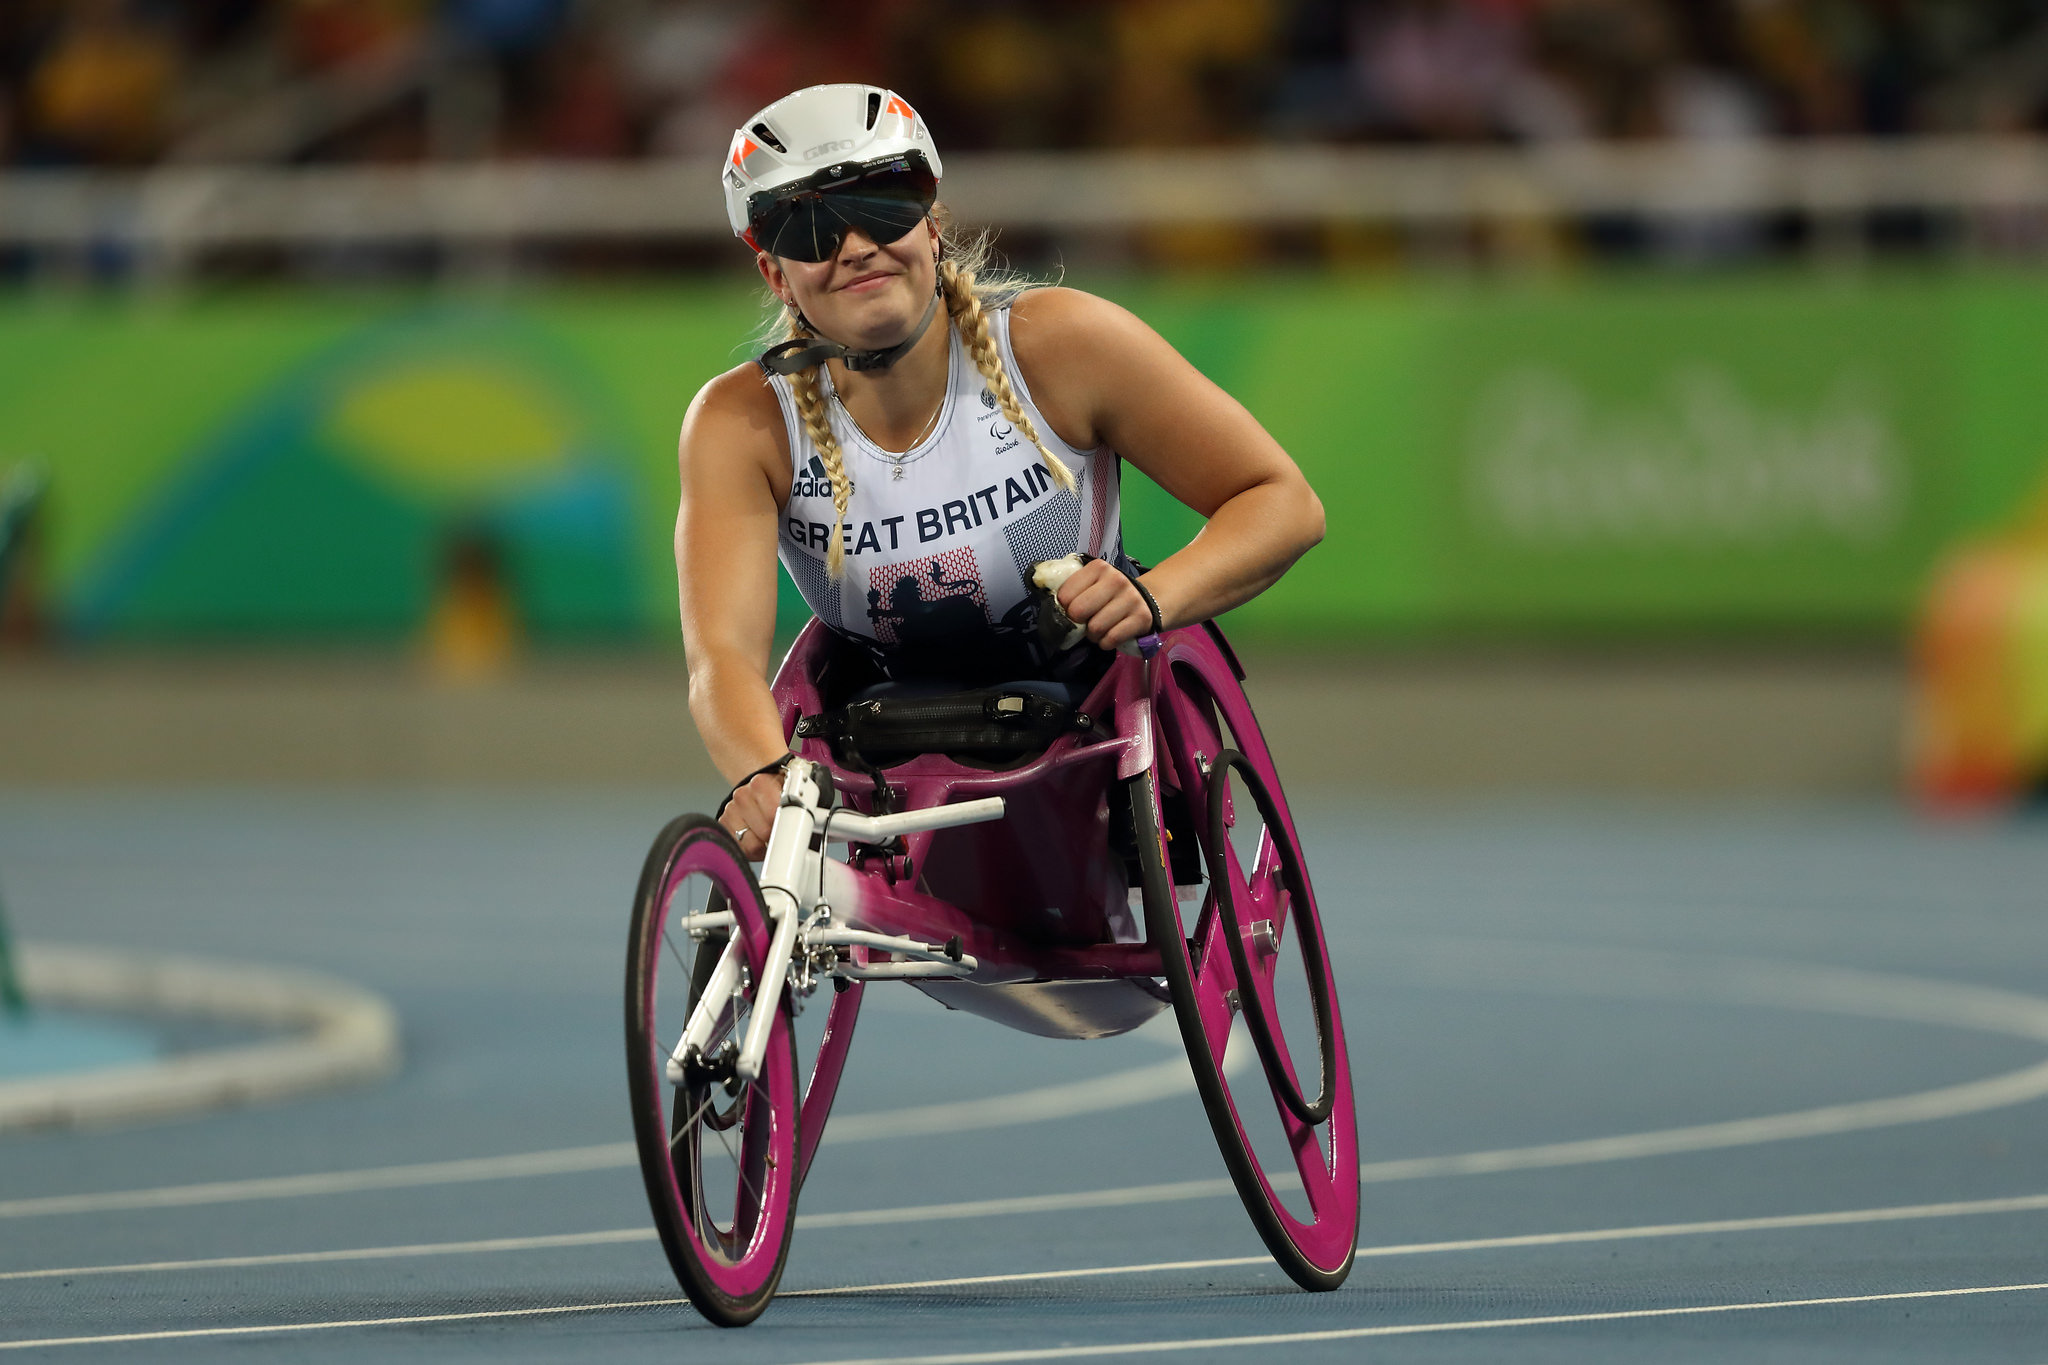 World Record for Sammi Kinghorn